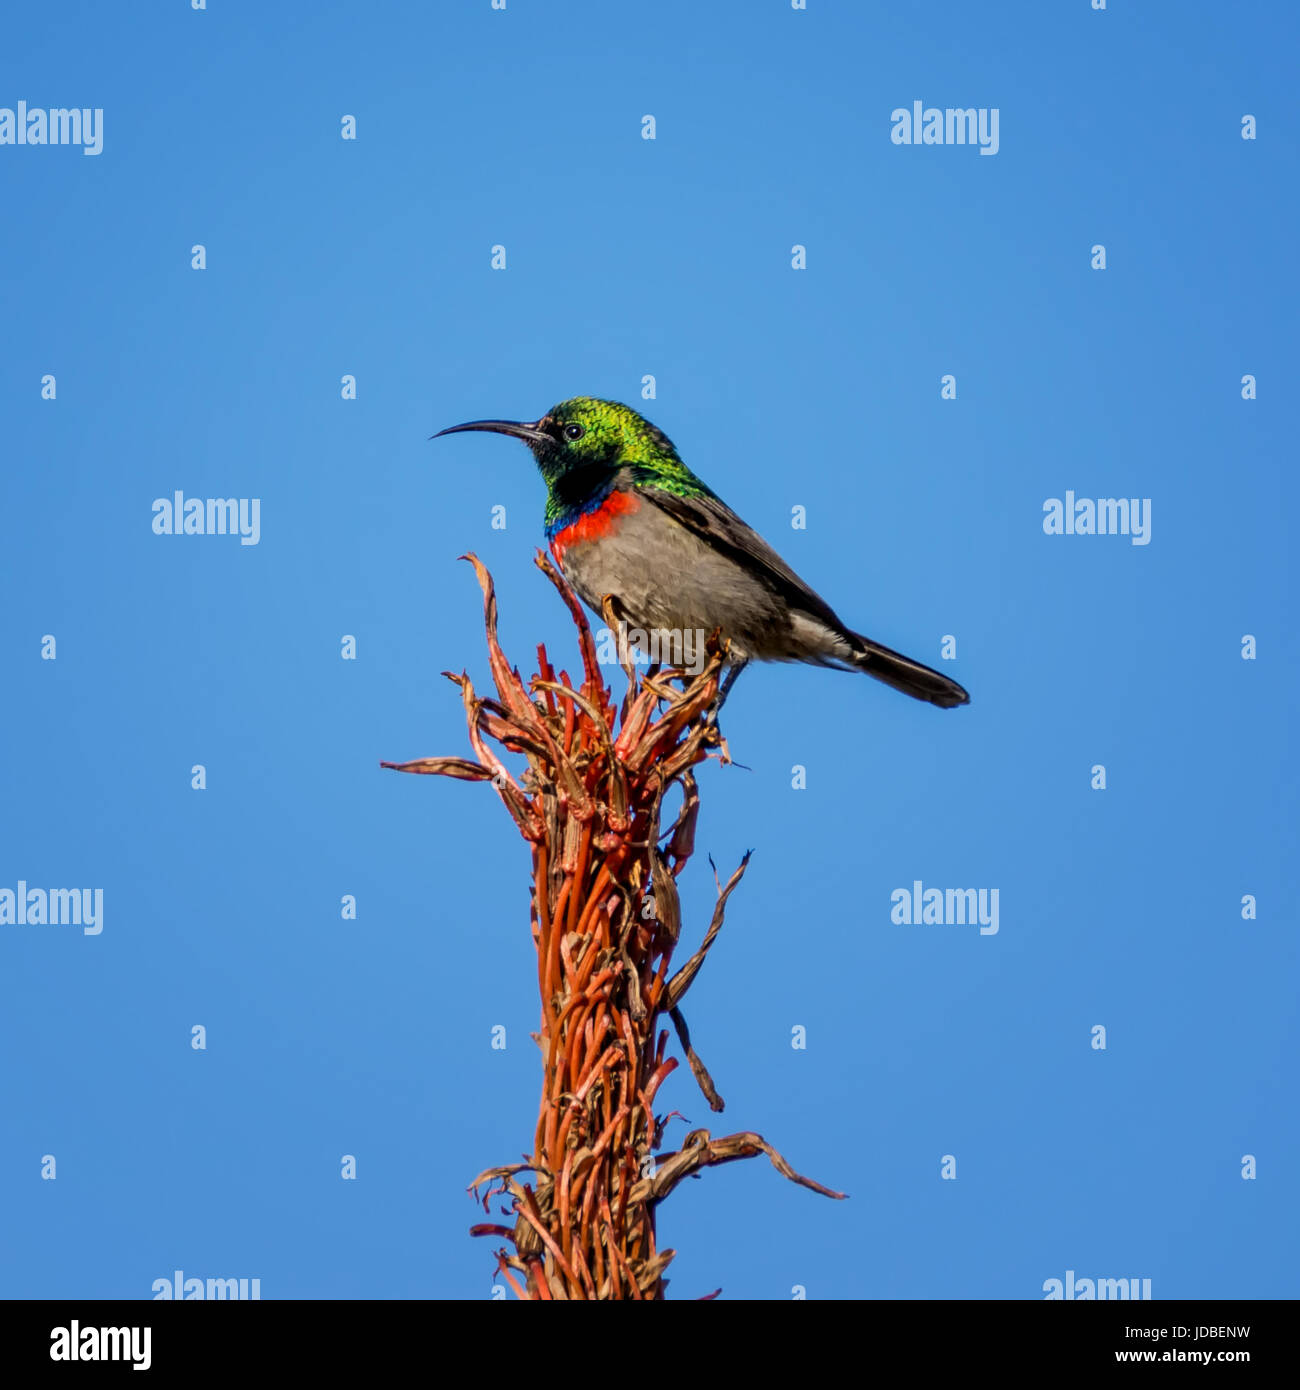 A Double-collared Sunbird perched on an Aloe plant in Southern Africa - Stock Image